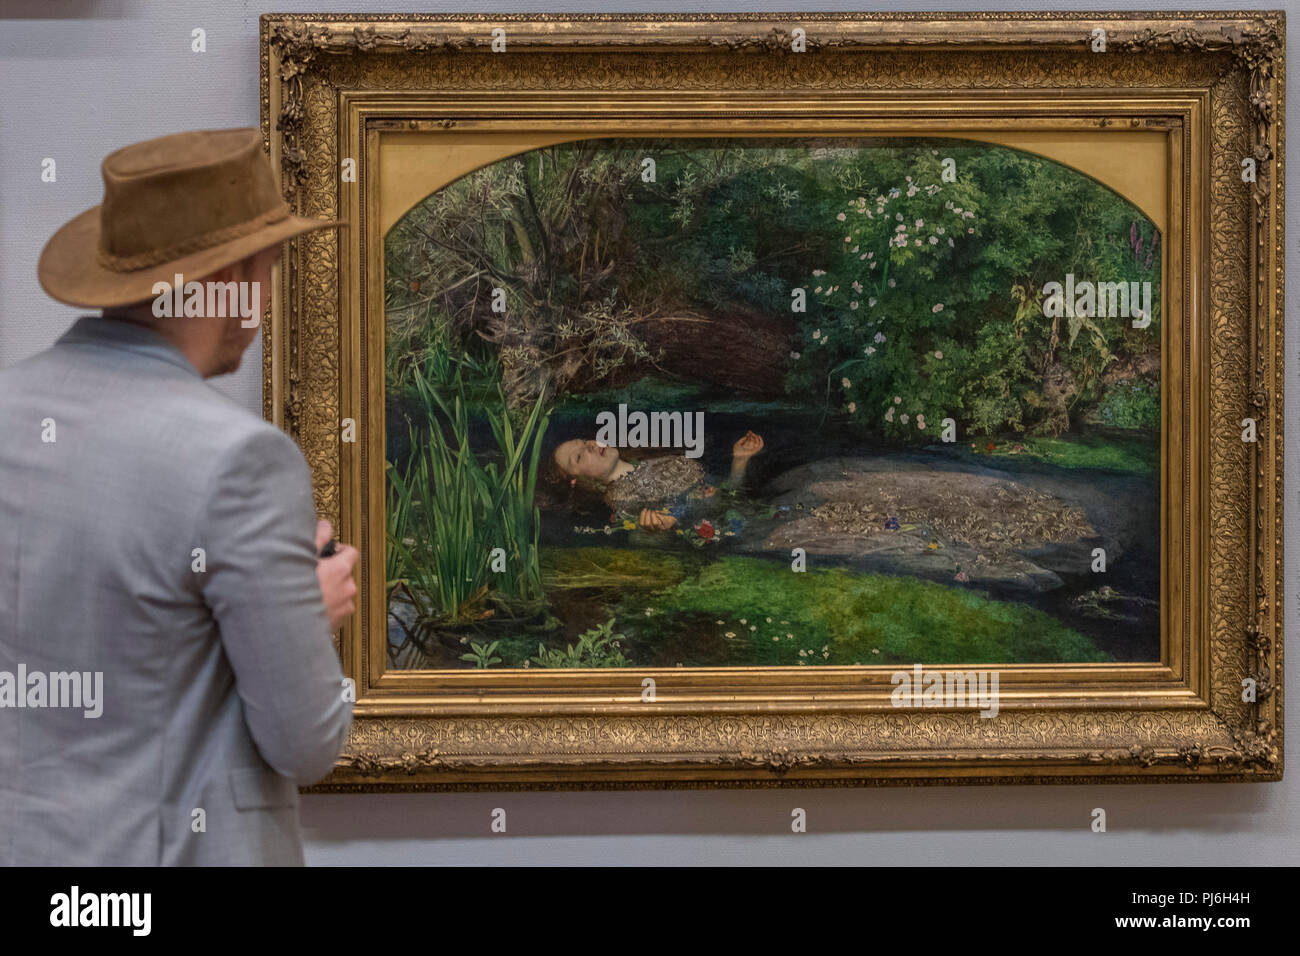 Tate Britain, London, UK. 5th Sept 2018. John Everett Millais' Ophelia 1851–52, on display to mark the launch of a major new exhibition at the National Gallery of Australia. Over forty works from Tate Britain's unrivalled collection of Pre-Raphaelite art will be loaned to the National Gallery of Australia in December. Credit: Guy Bell/Alamy Live News - Stock Image